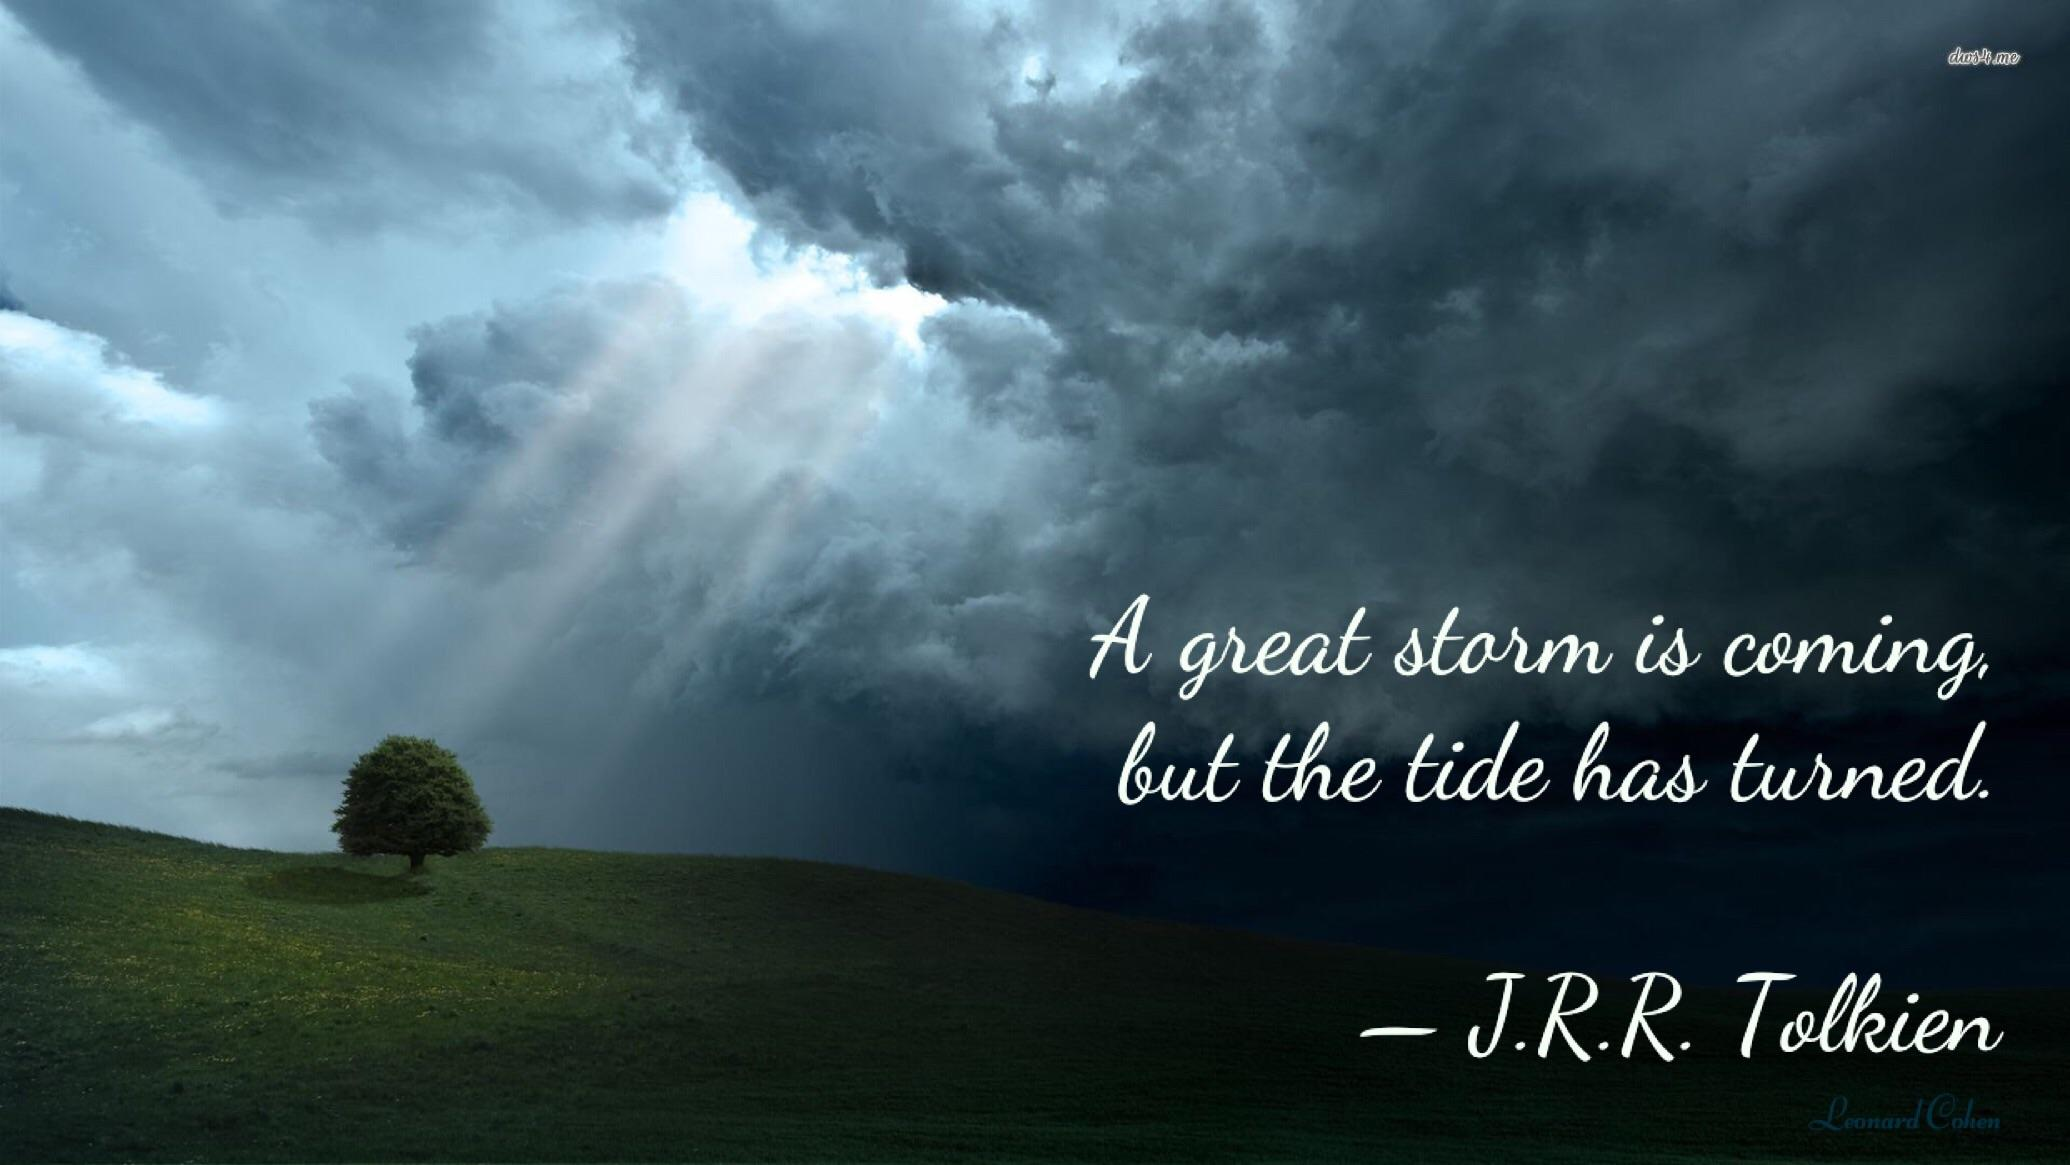 """A great storm is coming, but the tide has turned."" – J.R.R. Tolkien [2060×1165]"